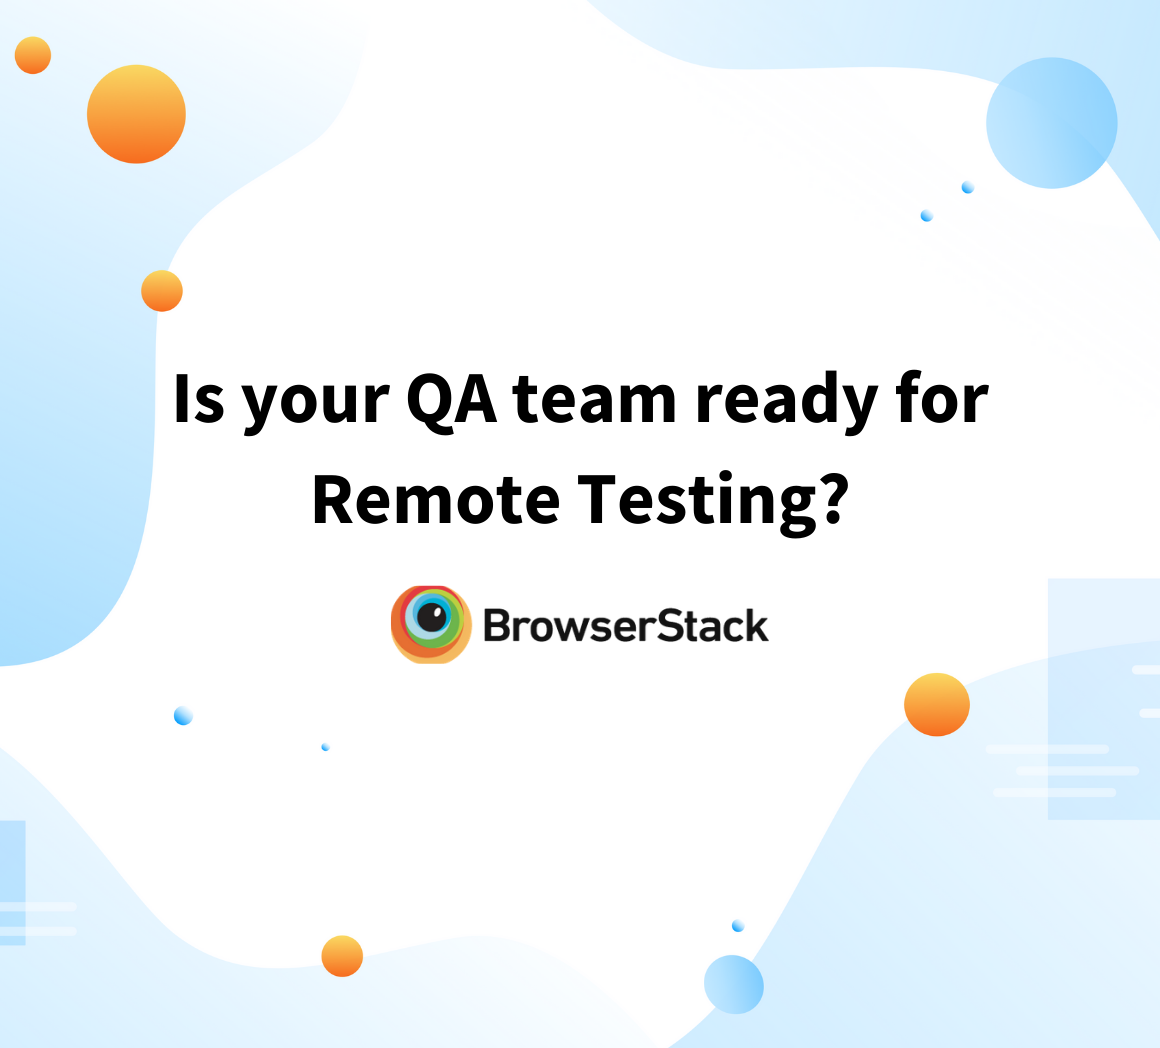 Standards for remote QA testing